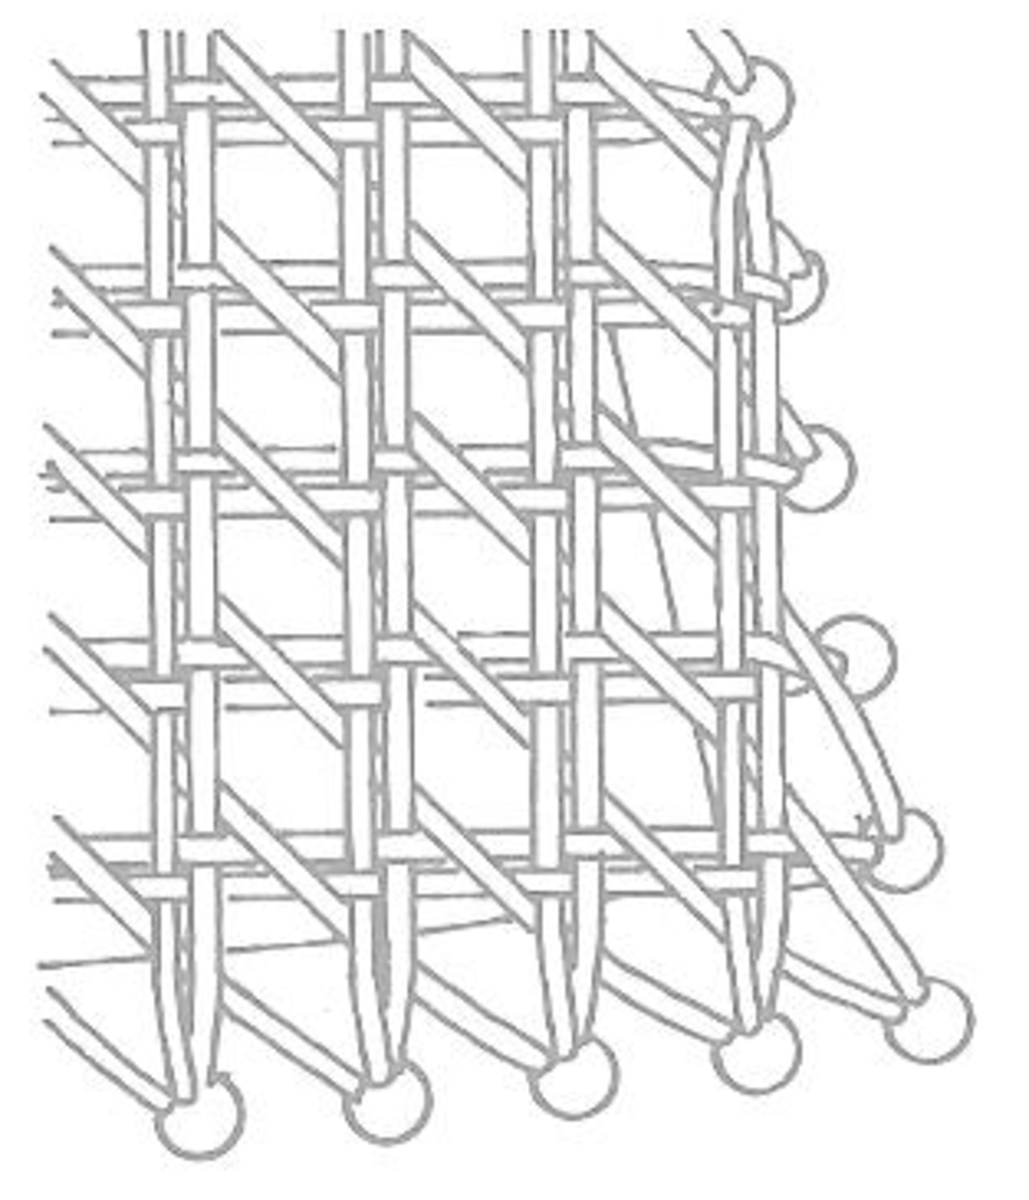 Figure 3: Position of Diagonal Rows